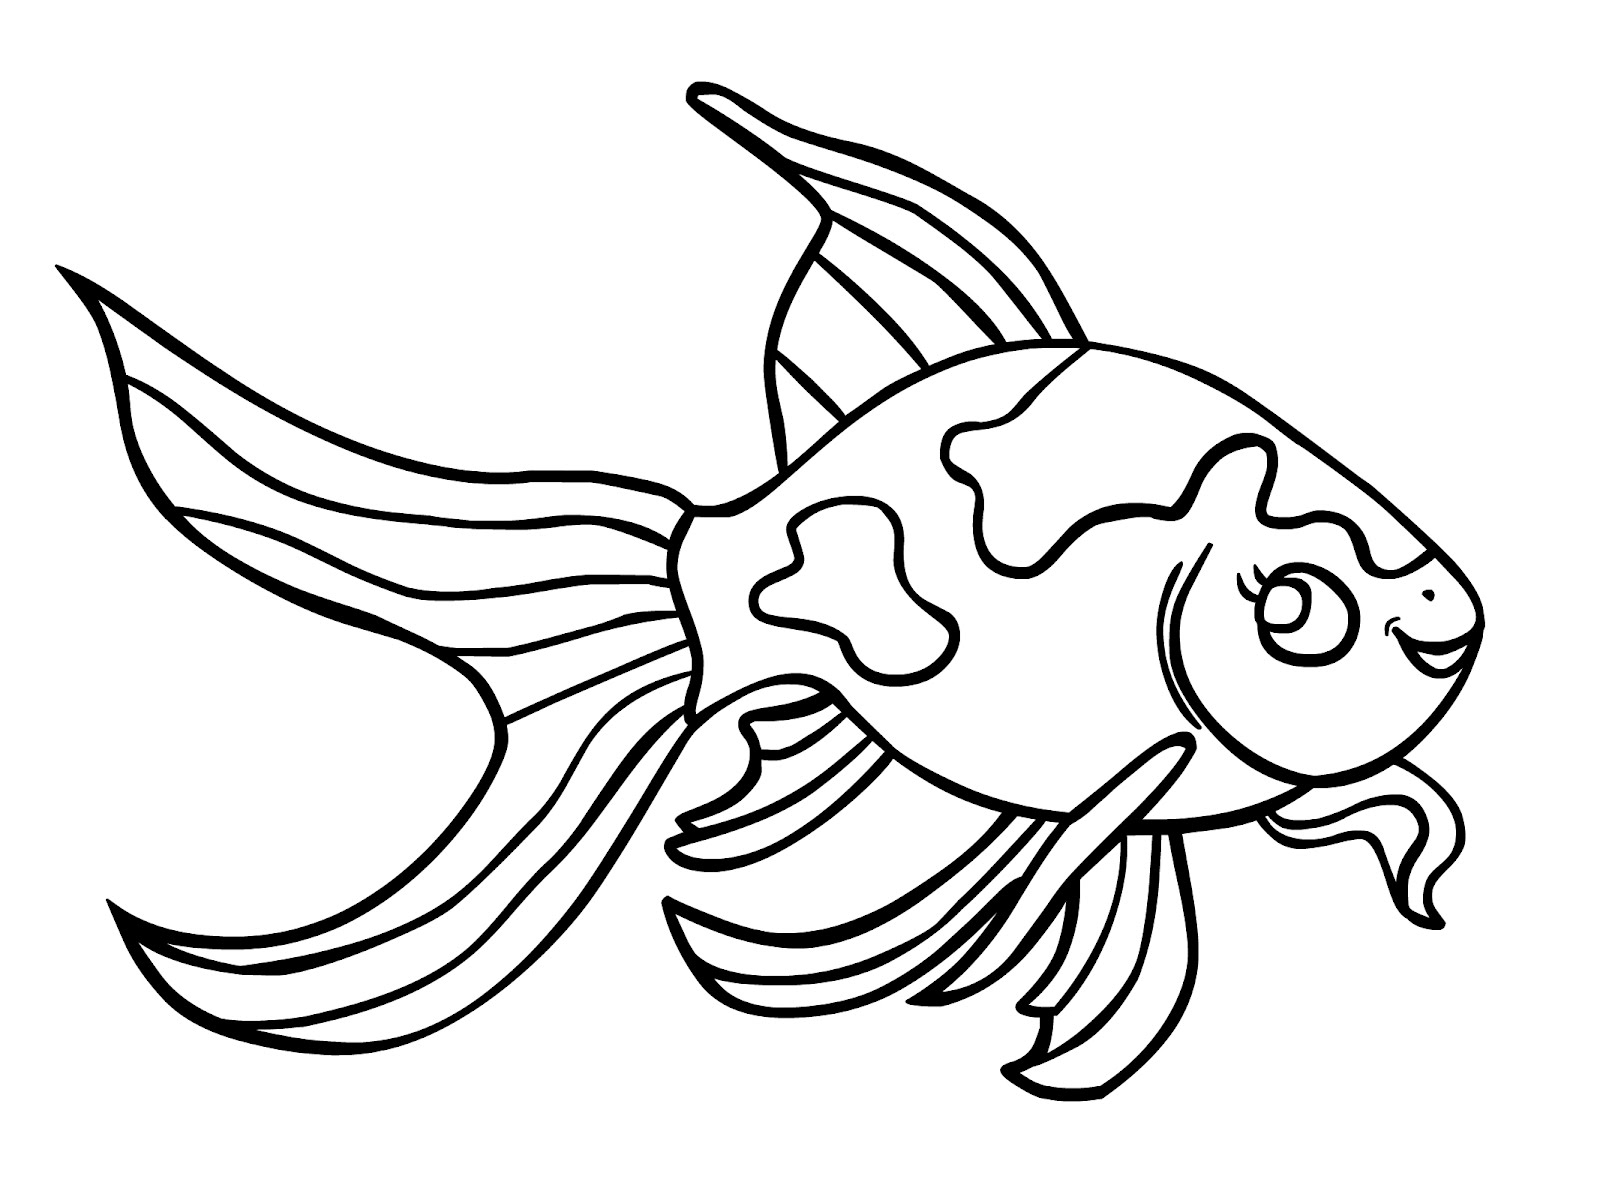 coloring pages of fishes - free printable goldfish coloring pages for kids